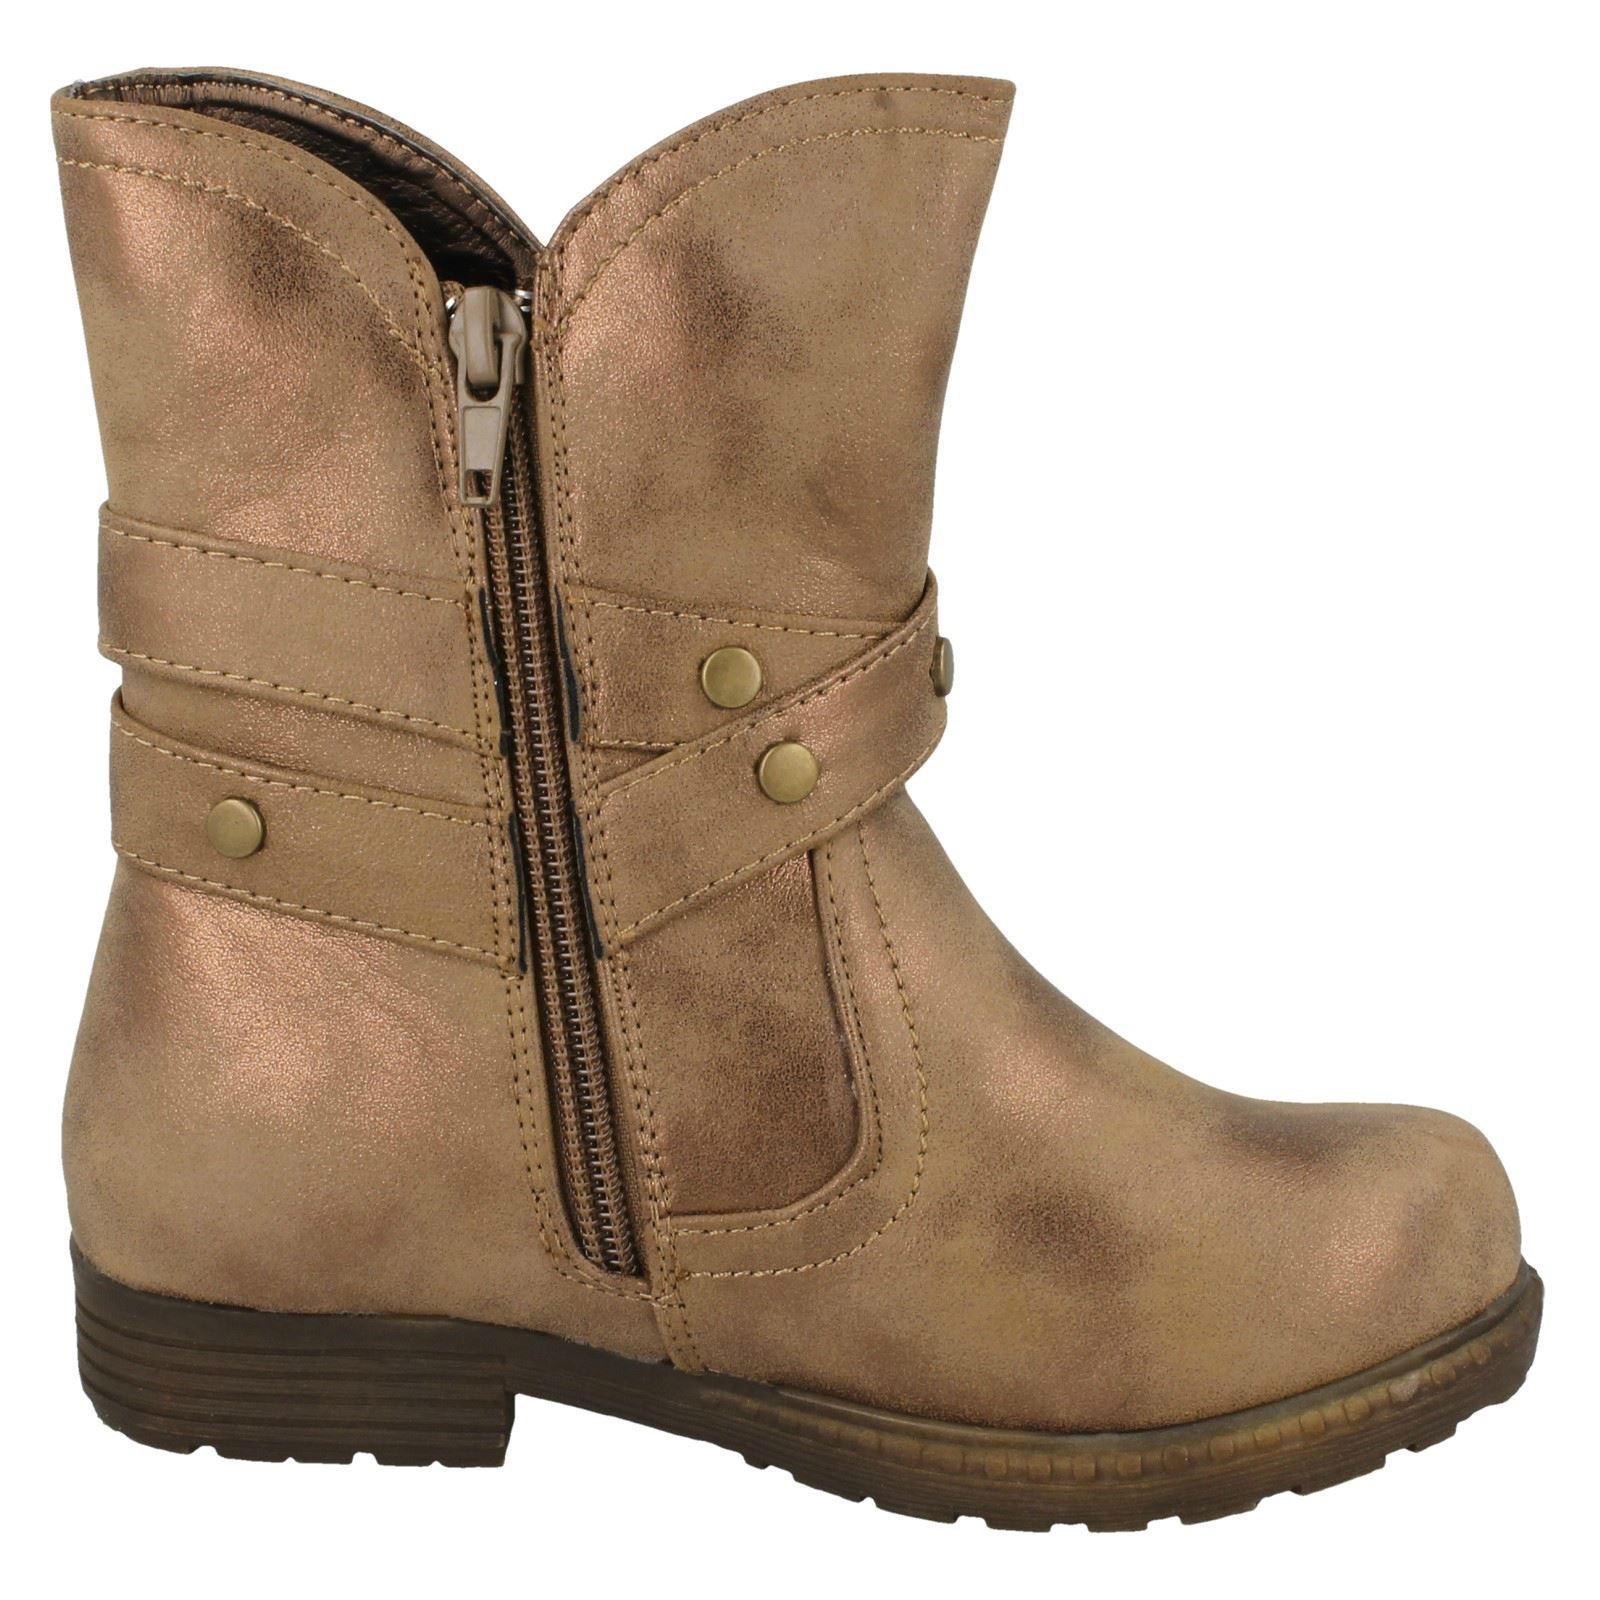 Girls Spot On Ankle Boots With Buckle Design